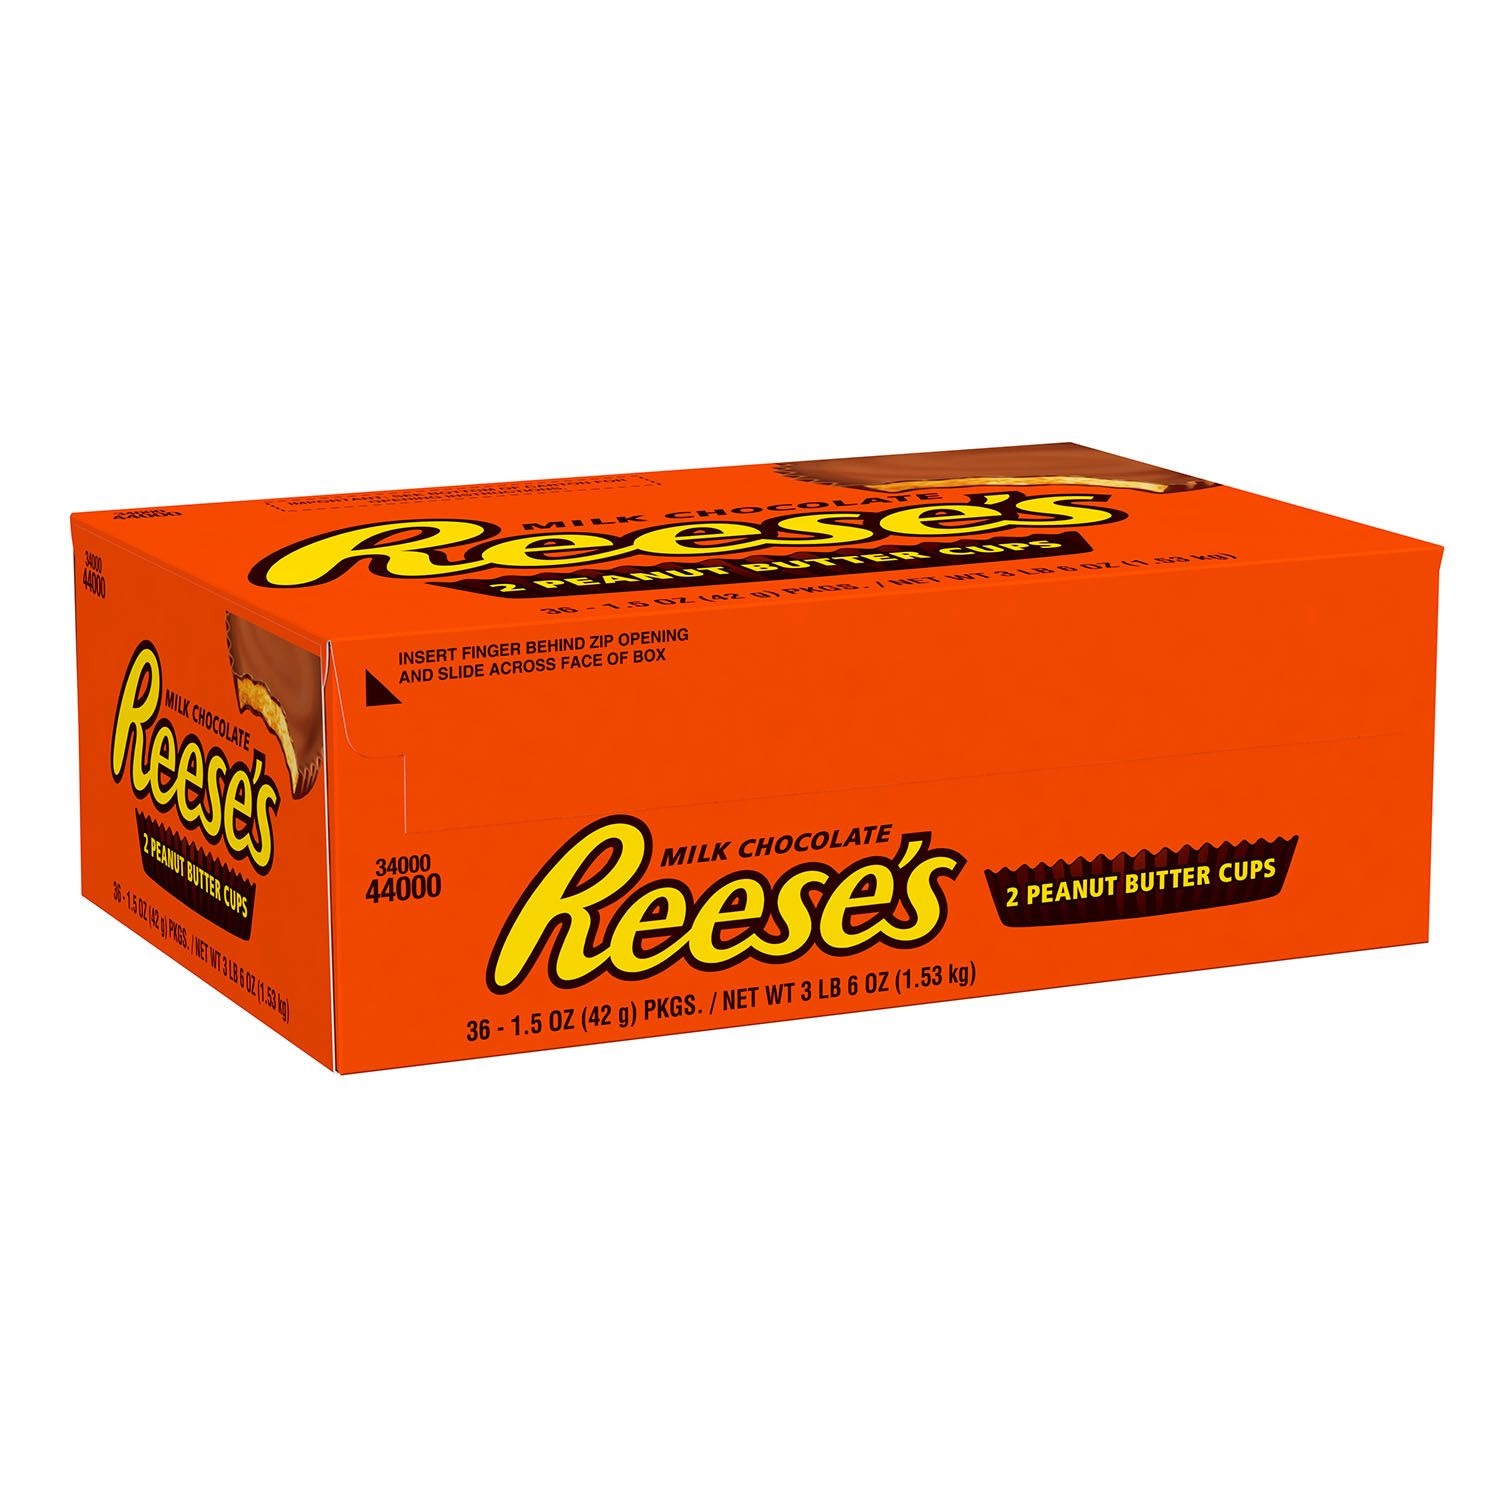 Reese's, Milk Chocolate Peanut Butter Cups, 1.5 Oz, 36 Ct